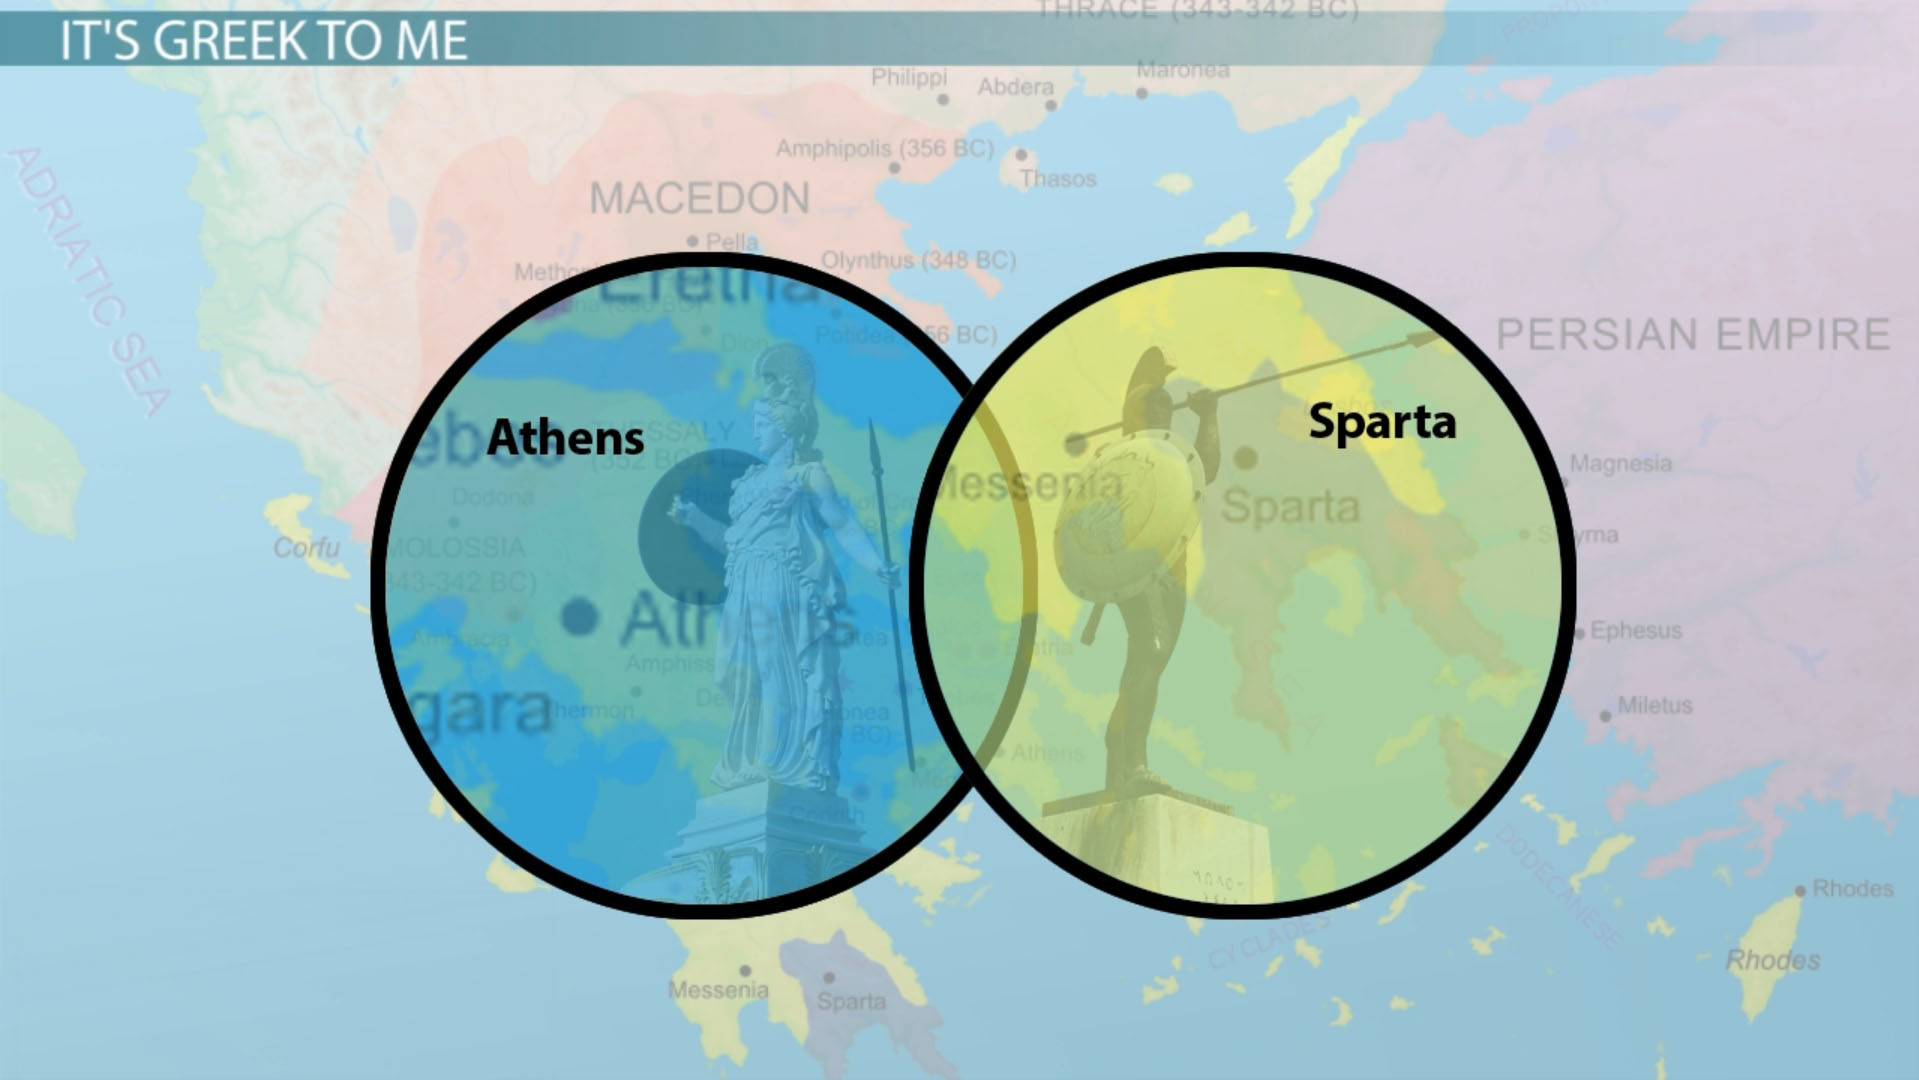 hight resolution of Life in Athens vs. Life in Sparta - World History Class (Video)   Study.com